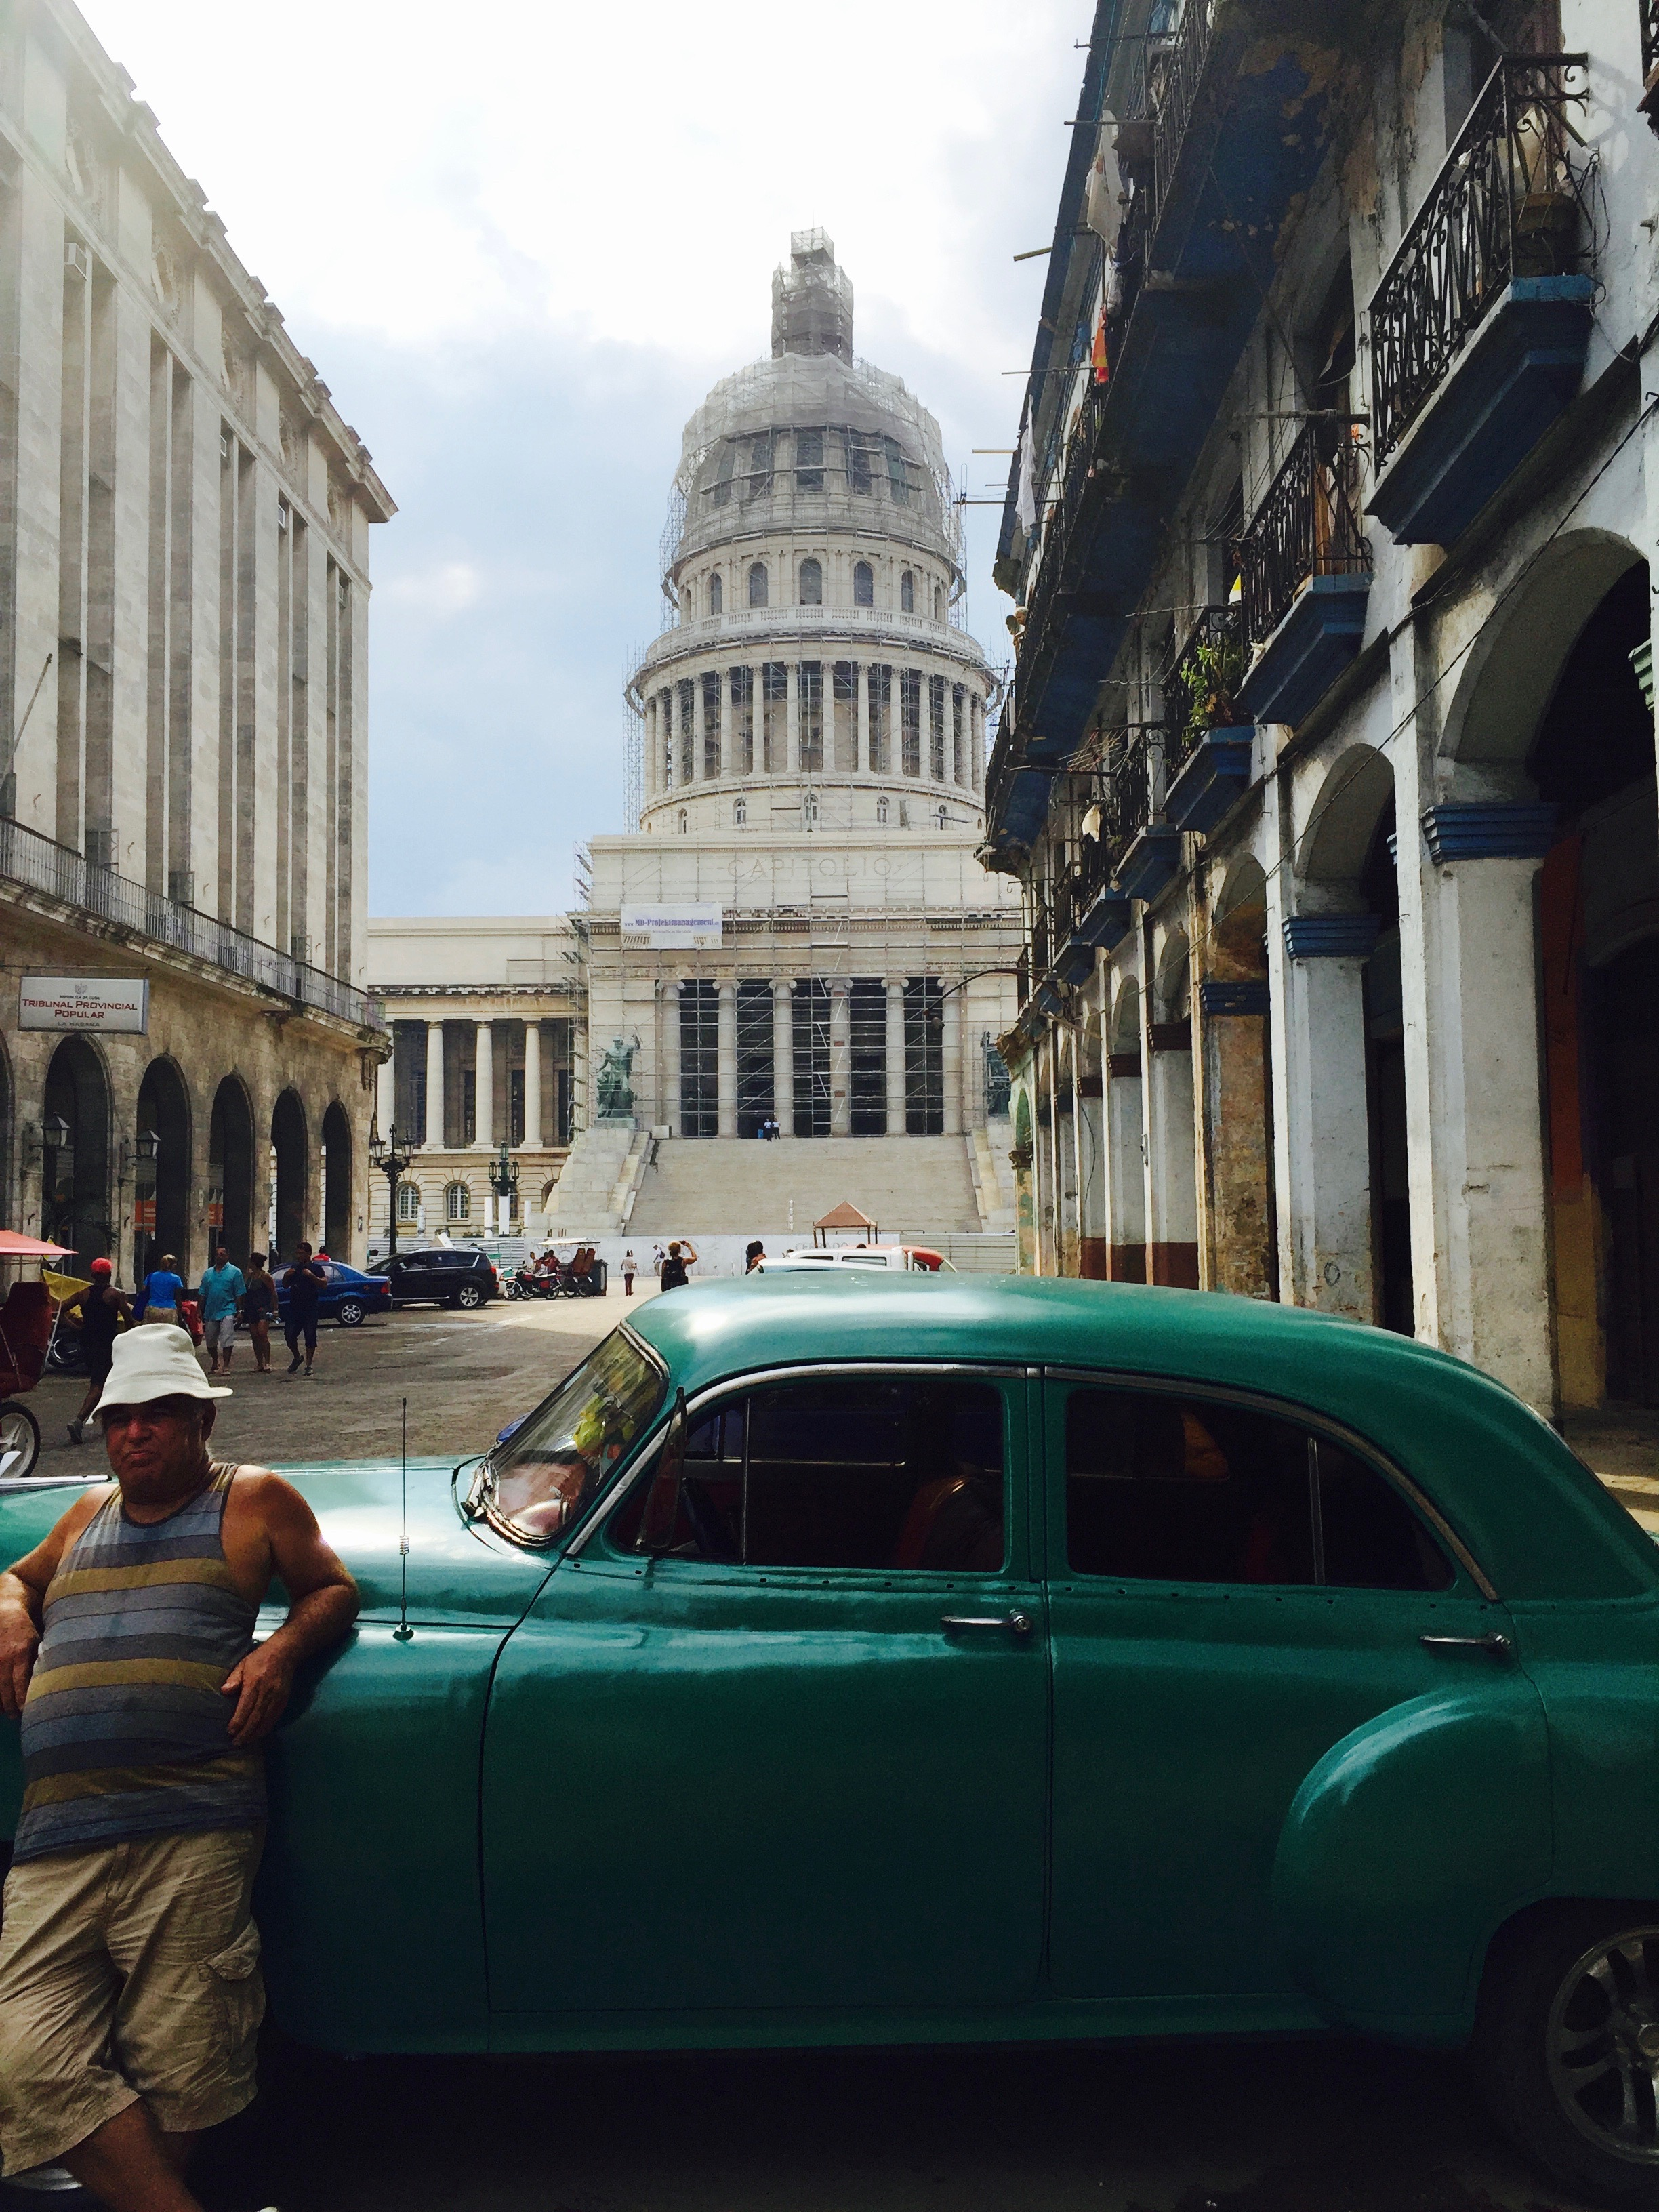 Views of El Capitolio. It once served as the seat of the government until the Cuban Revolution in 1959. It is now the new home to the Cuban Academy of Sciences.